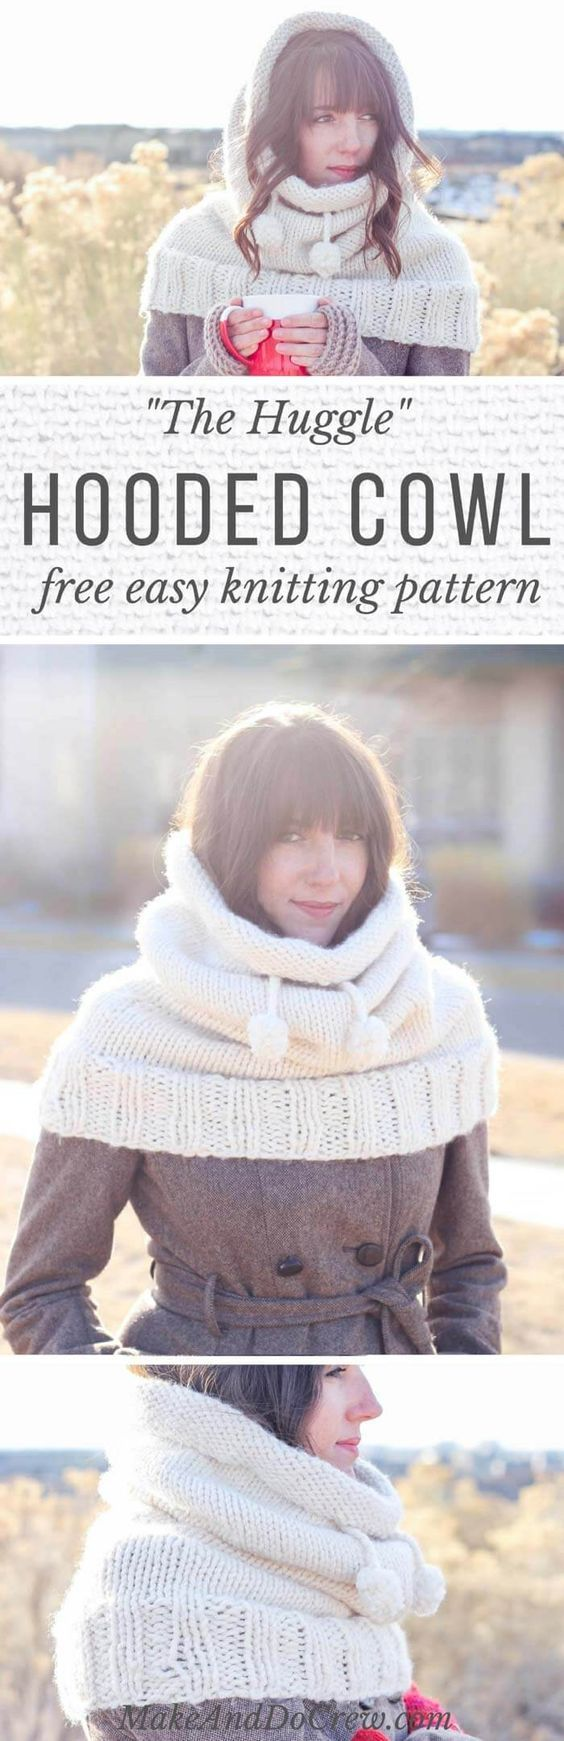 The Huggle\' Hooded Cowl – Free Knitting Pattern | Ponchos